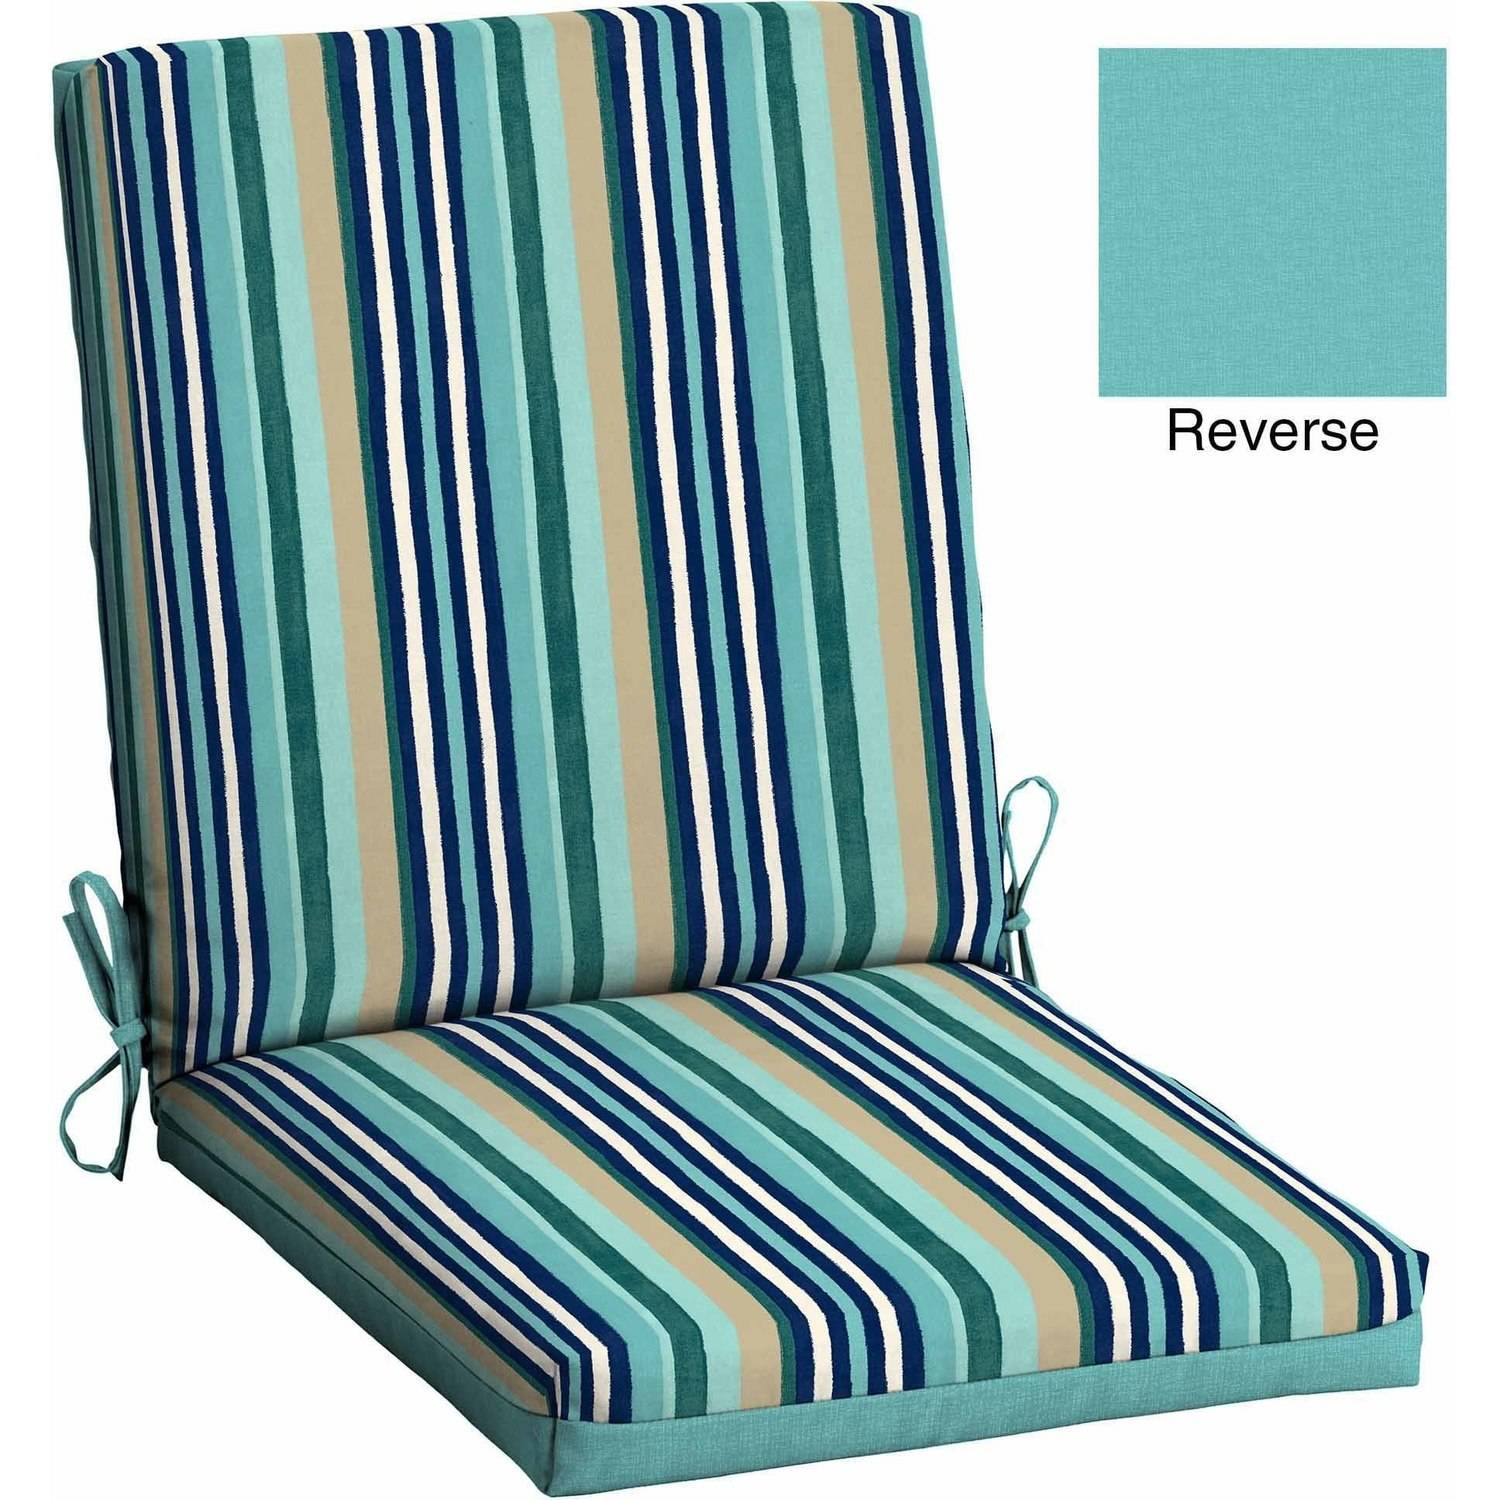 Images of cushions for outdoor furniture mainstays outdoor patio reversible dining chair cushion, turquoise stripe ngnadrn